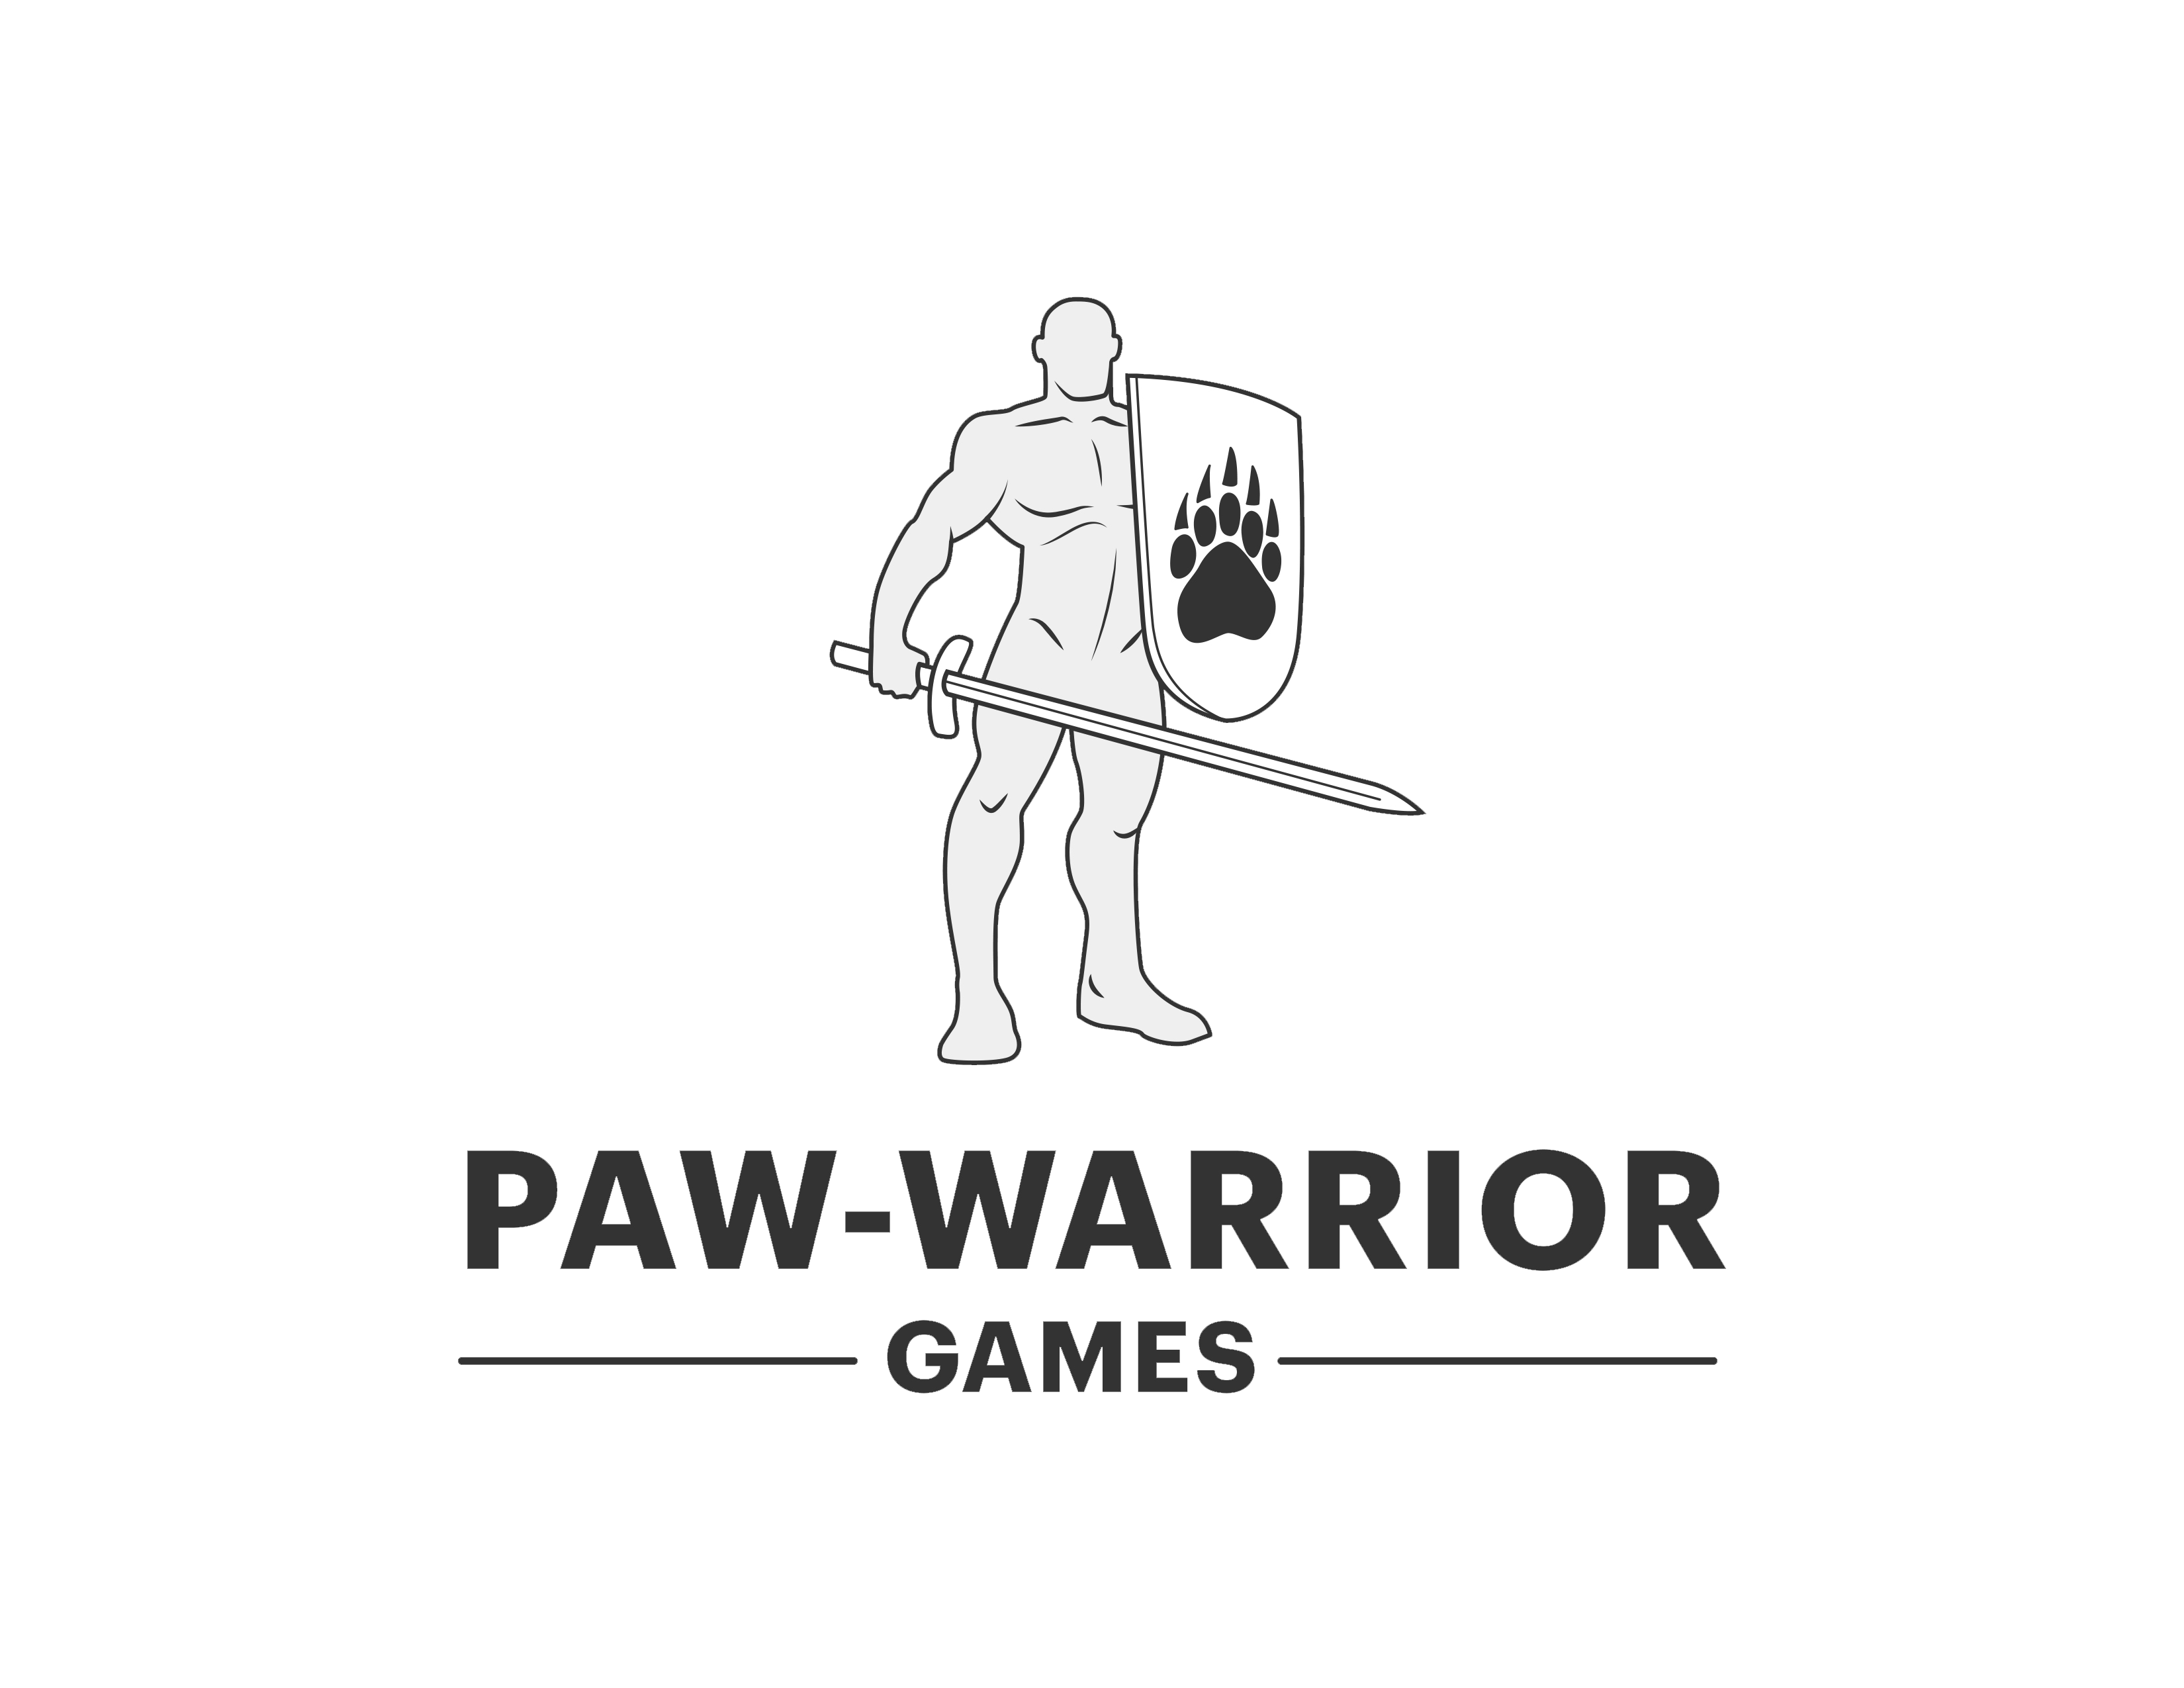 Paw-Warrior Games